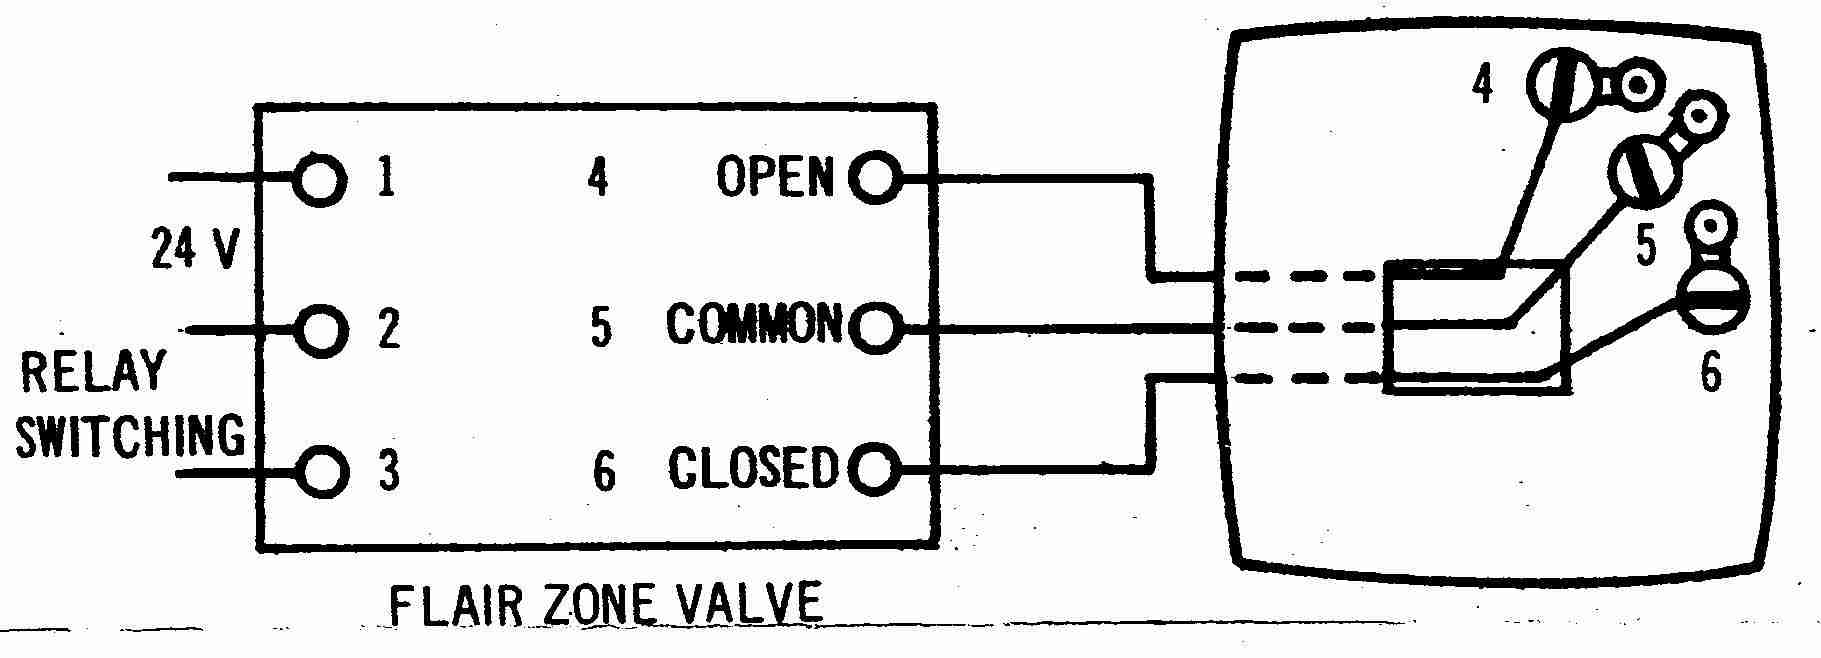 Zone Valve Wiring Manuals Installation & Instructions: Guide ... on 5.3 motor diagram, 5.3 firing order diagram, 5.3 fuel system diagram, 5.3 coolant diagram, 5.3 engine diagram,